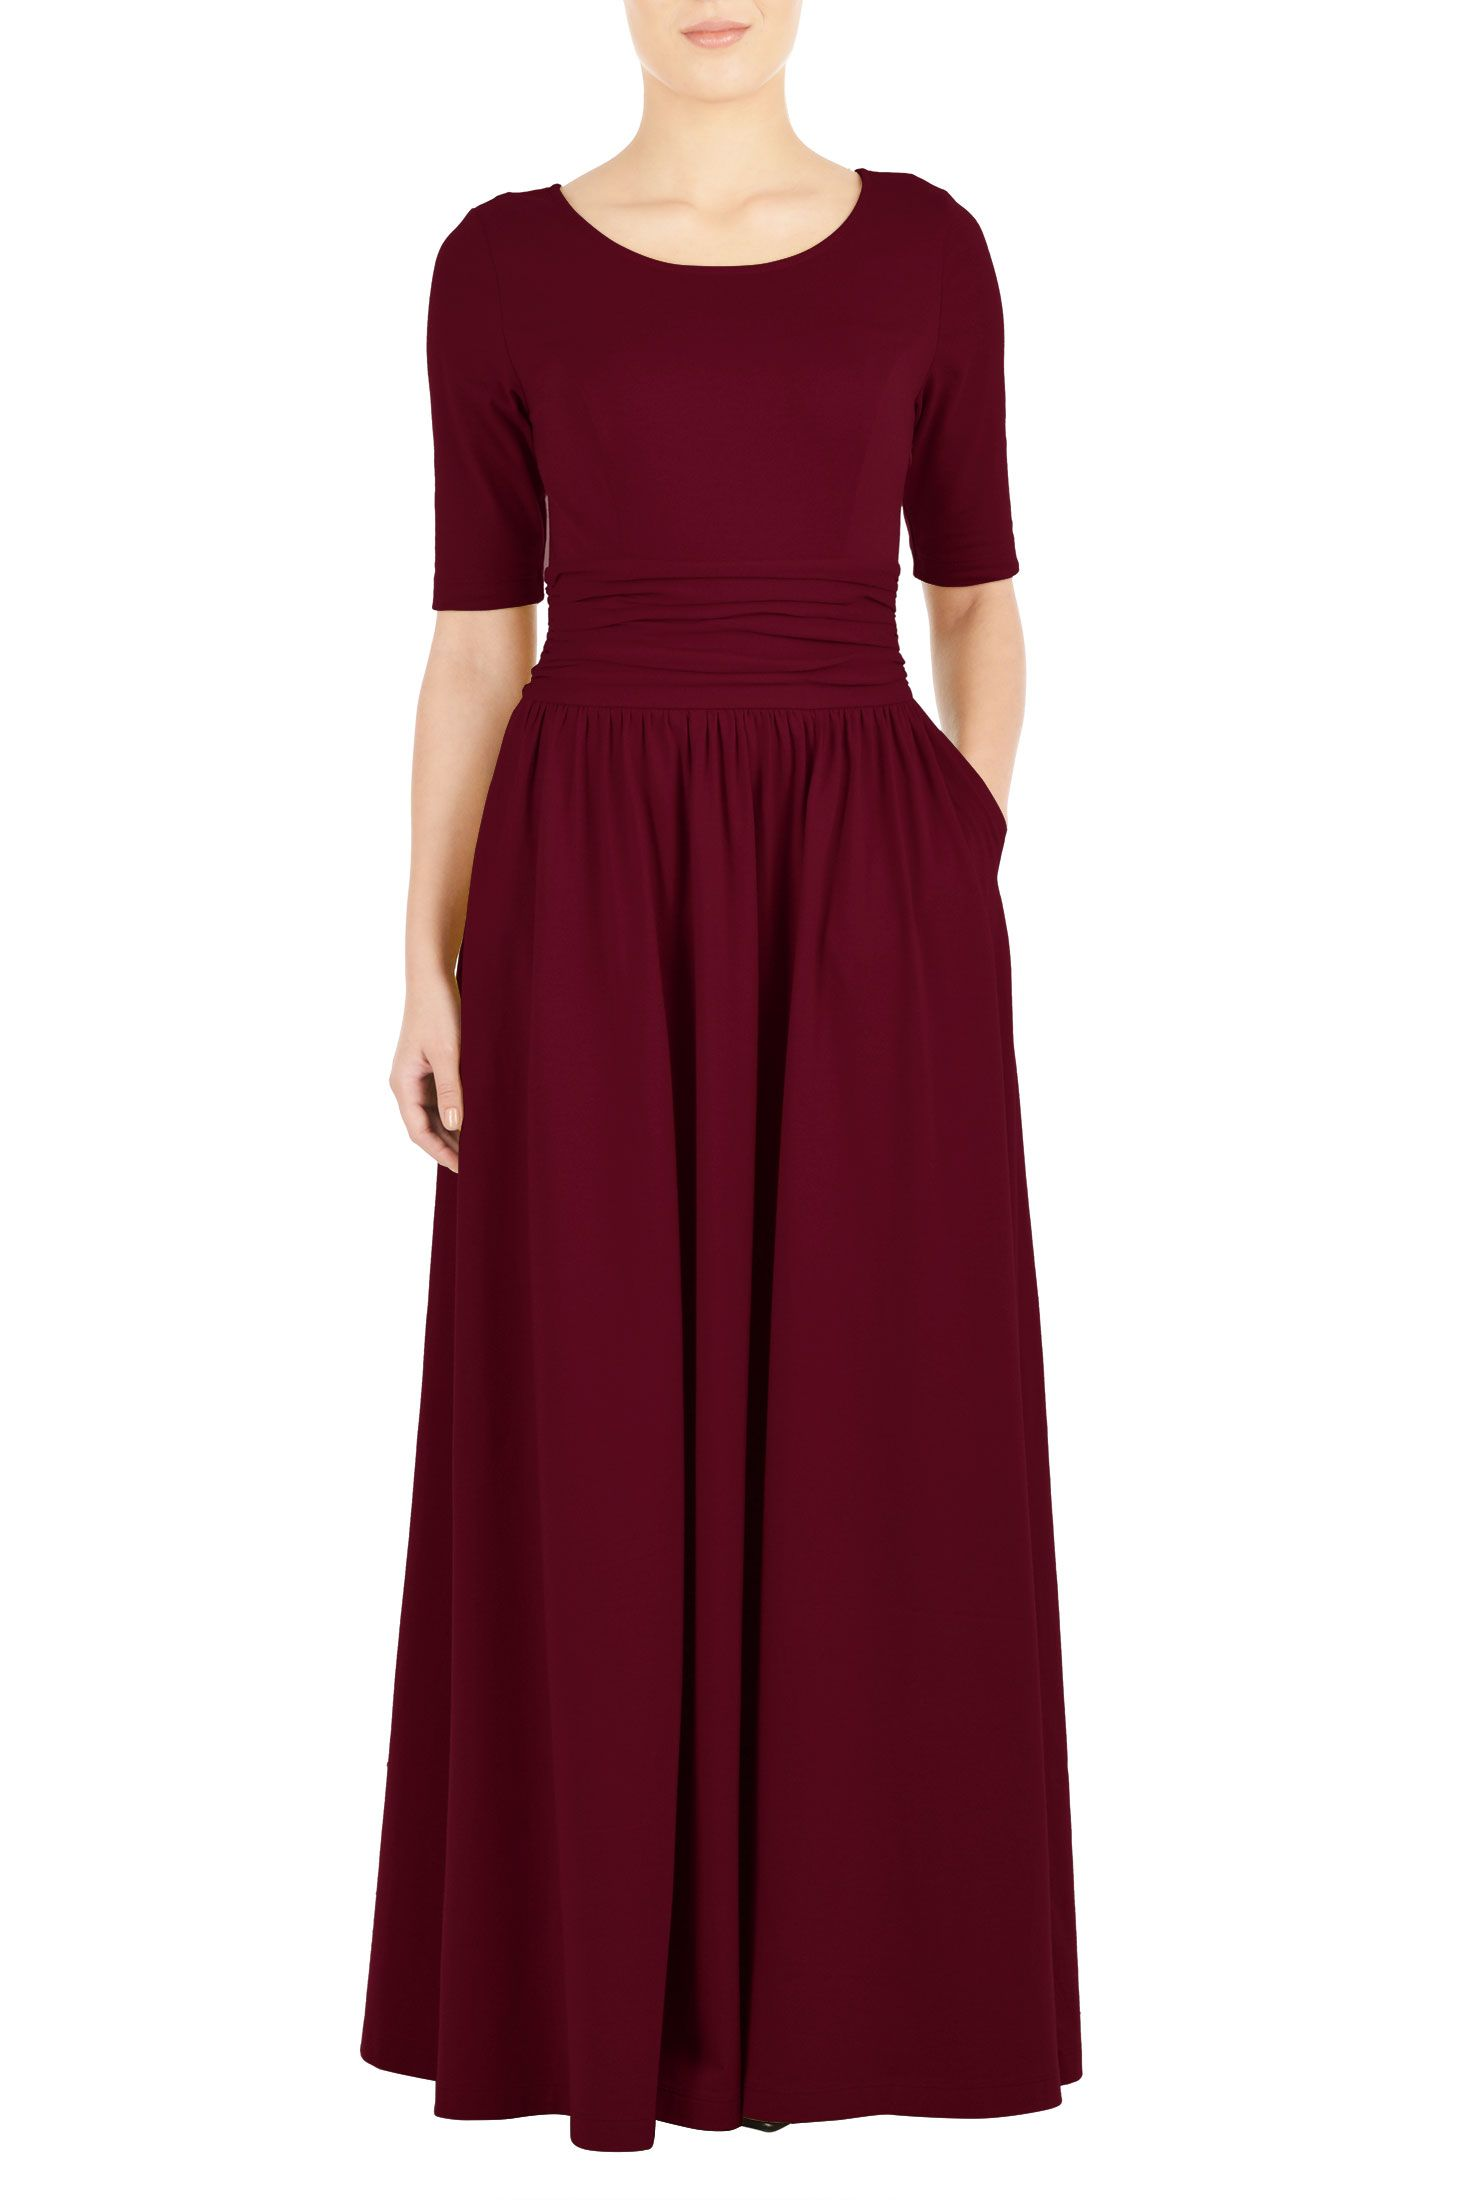 Our cotton jersey maxi dress gives you a long and lithe look in a